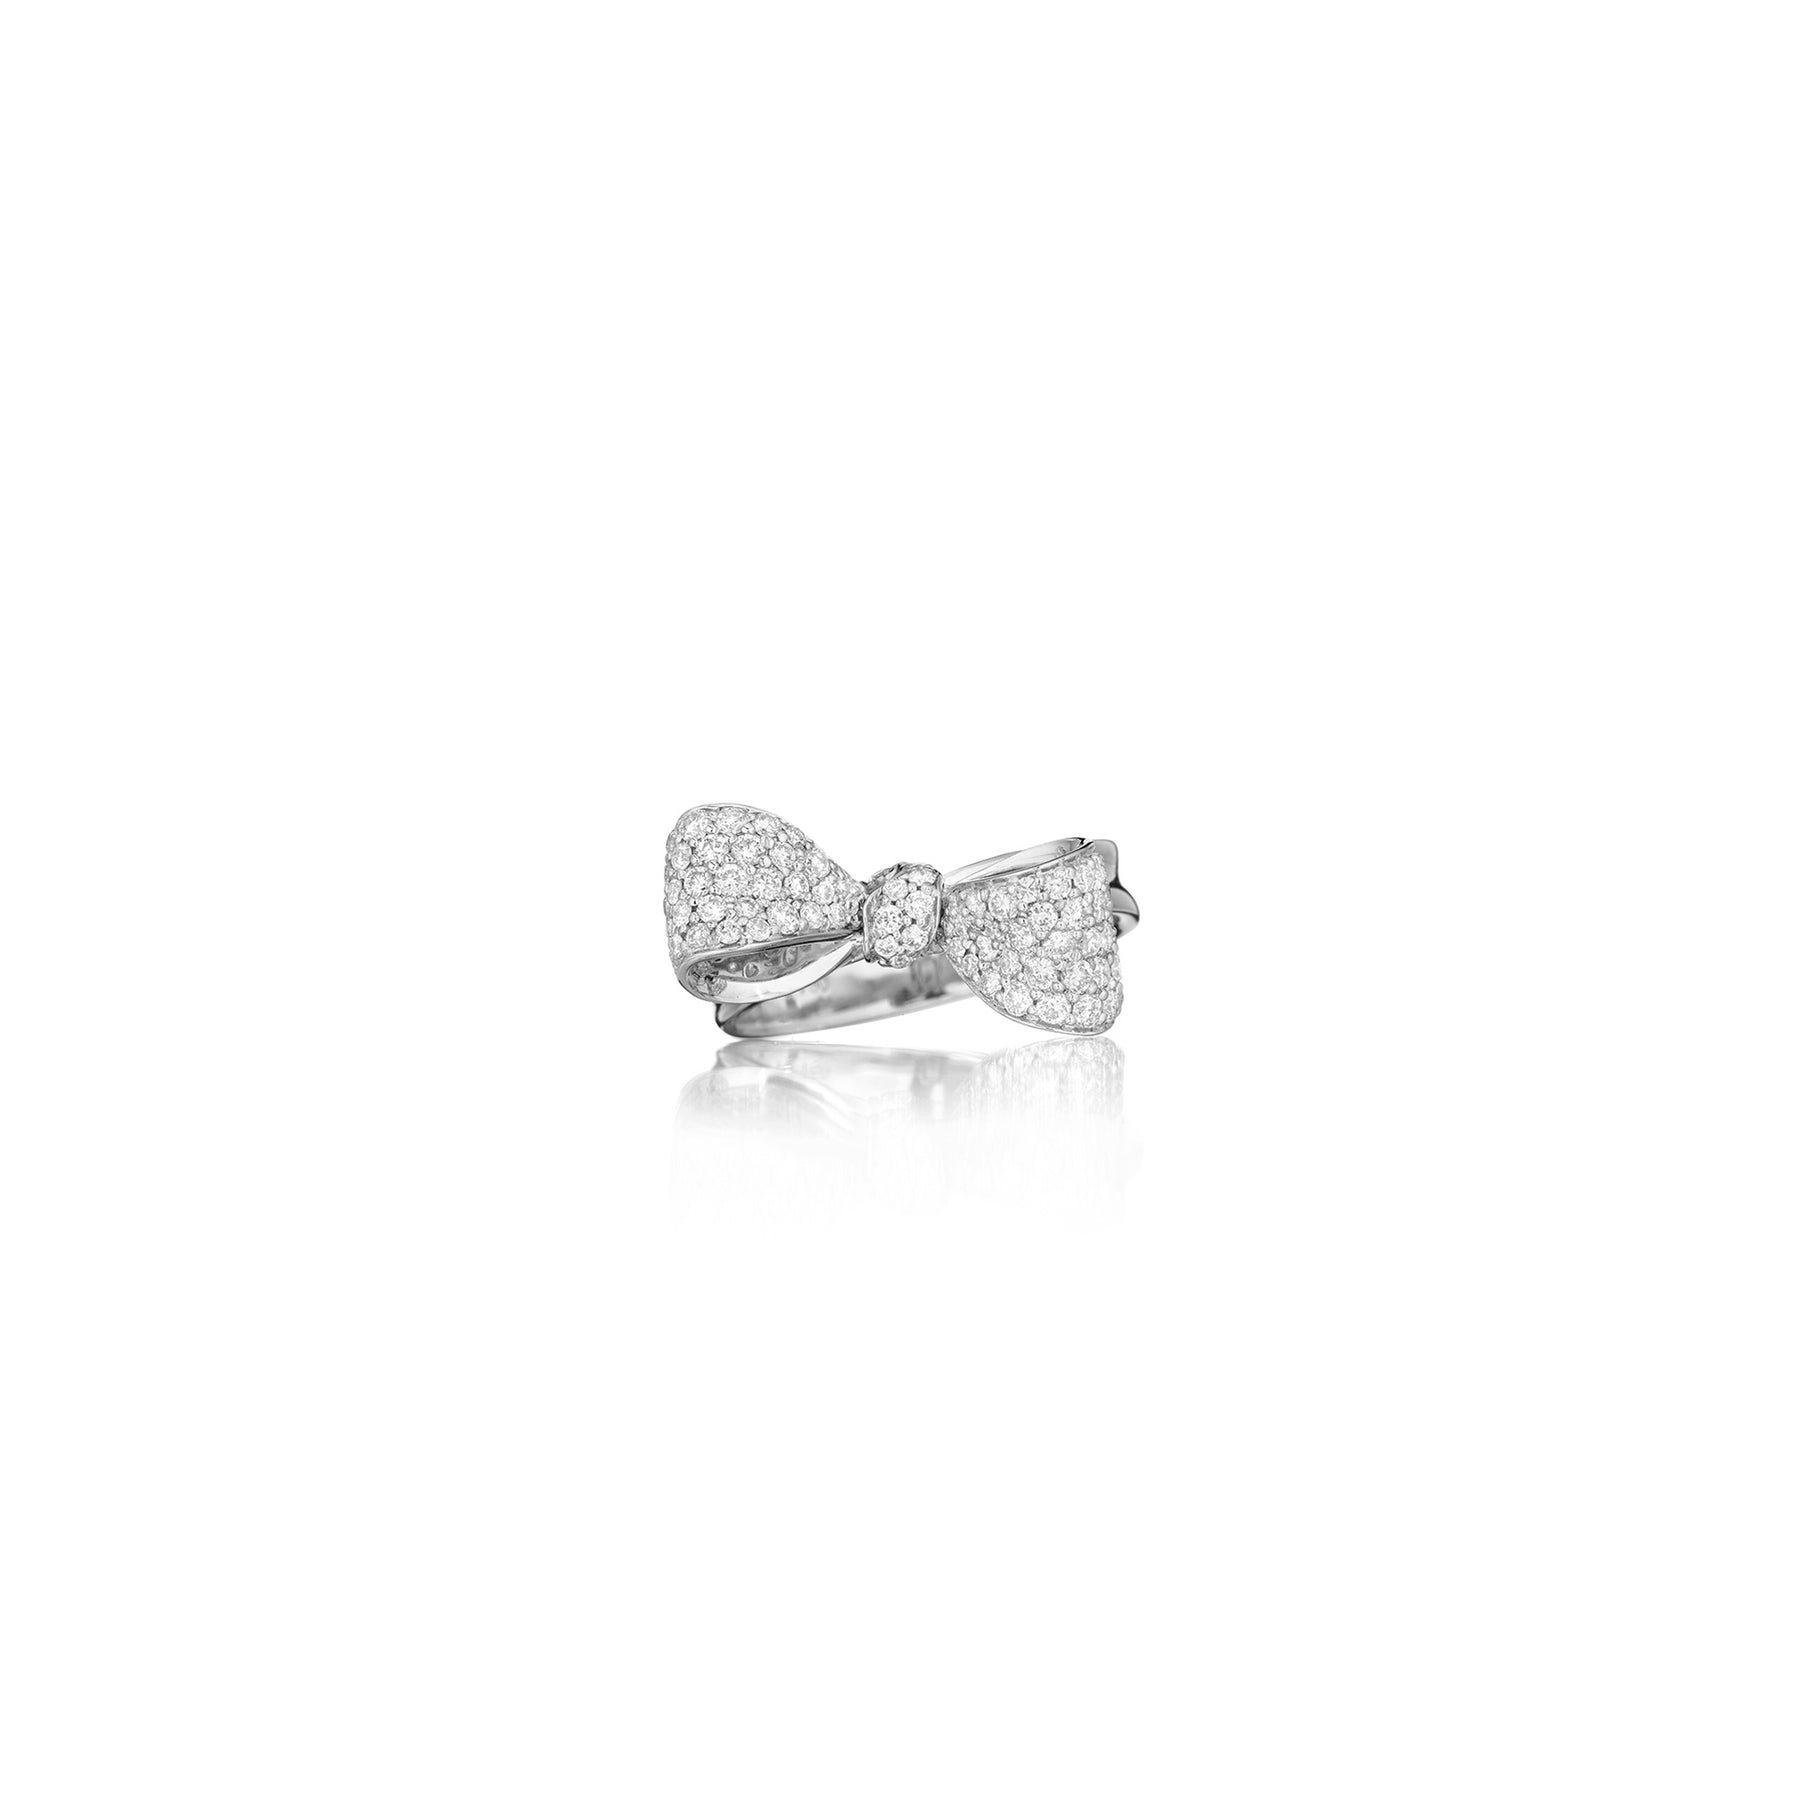 Mimi-So-Bow-Diamond-Ring-Petite_18k White Gold